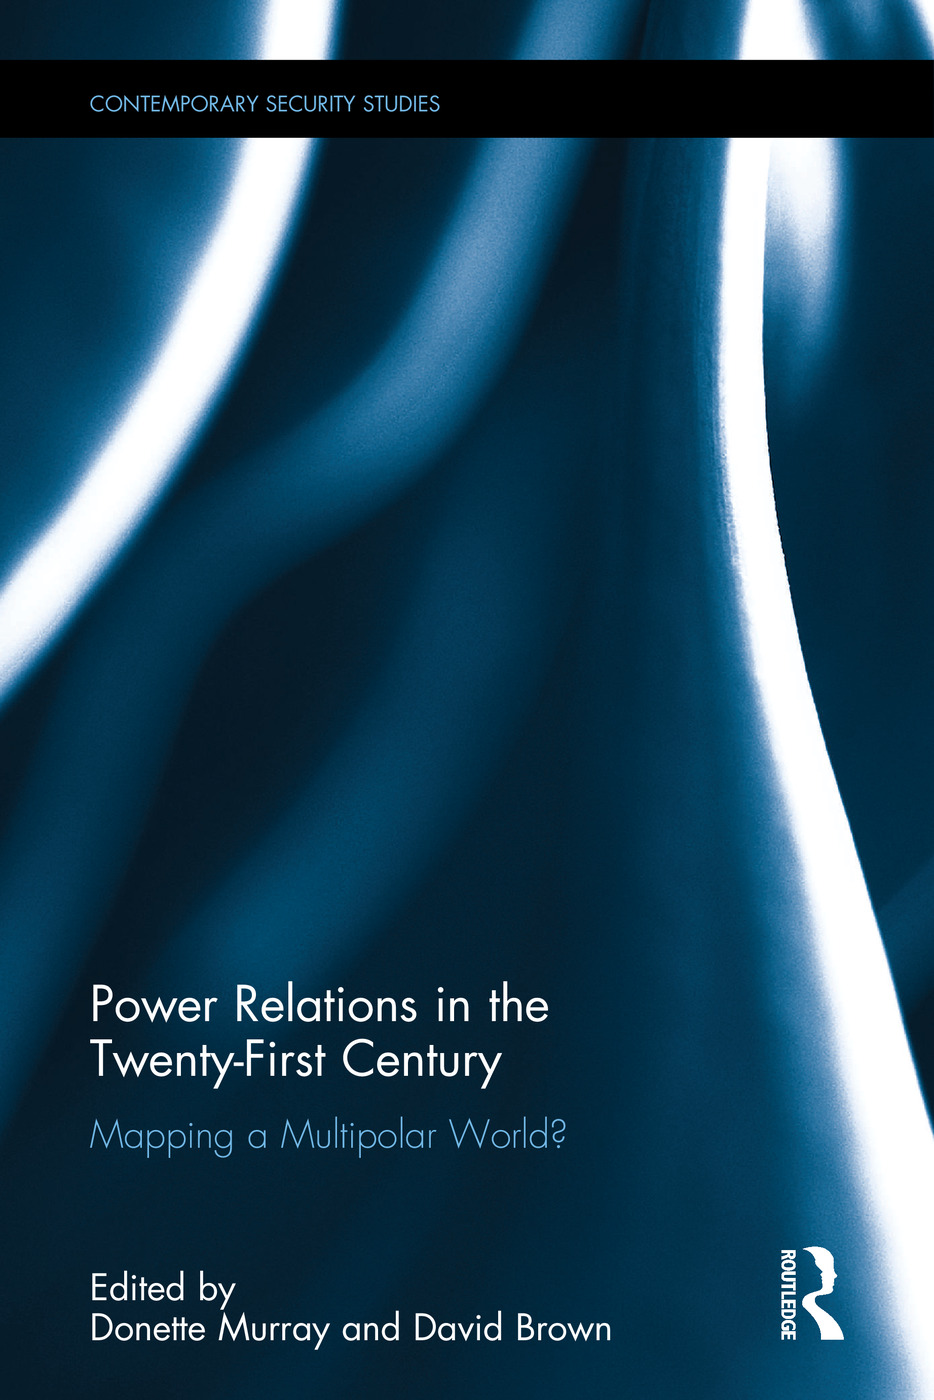 Power Relations in the Twenty-First Century: Mapping a Multipolar World? book cover